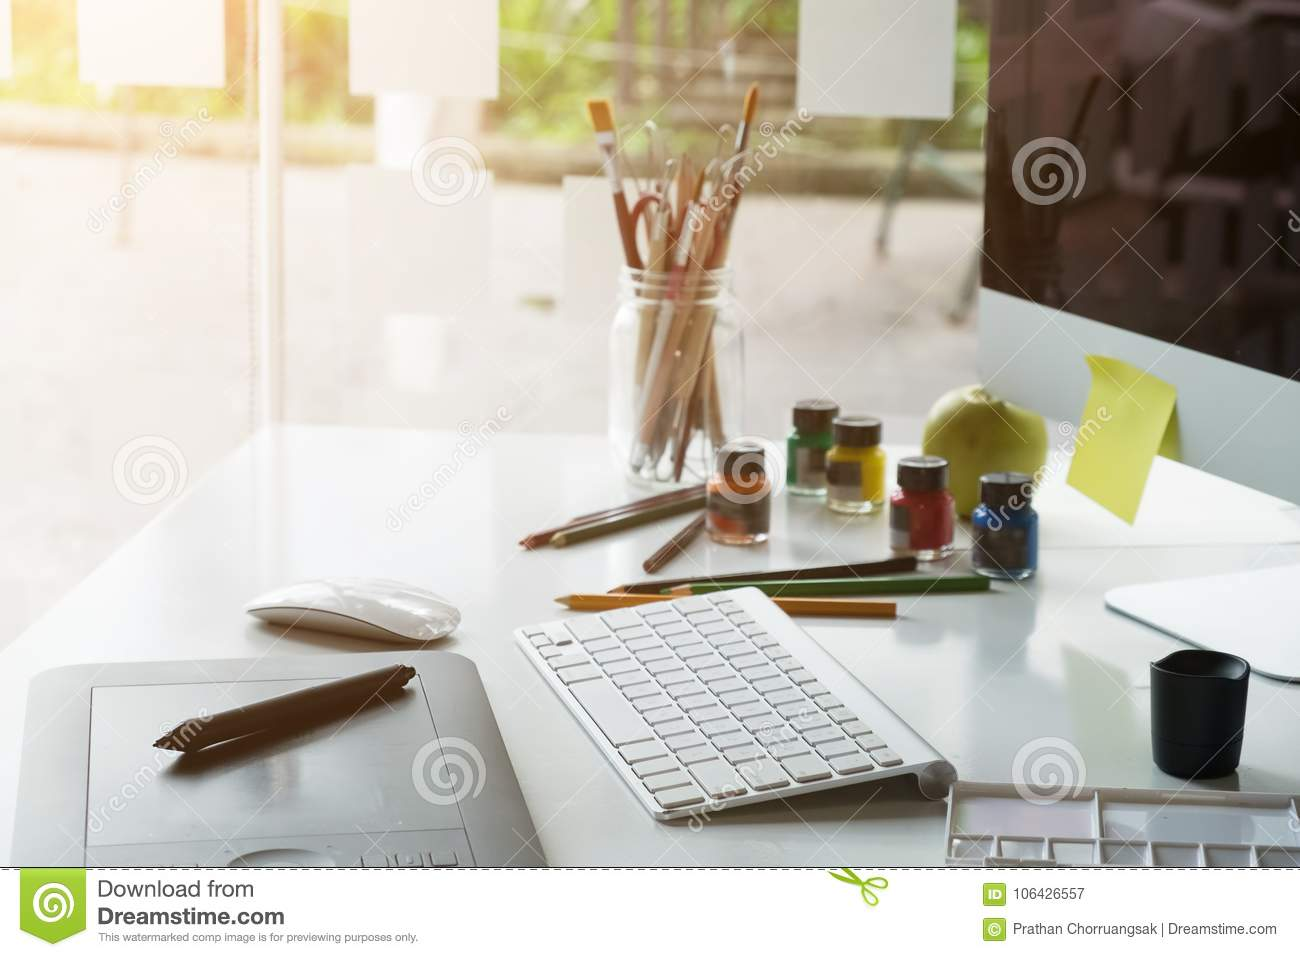 29 908 Artist Desk Photos Free Royalty Free Stock Photos From Dreamstime